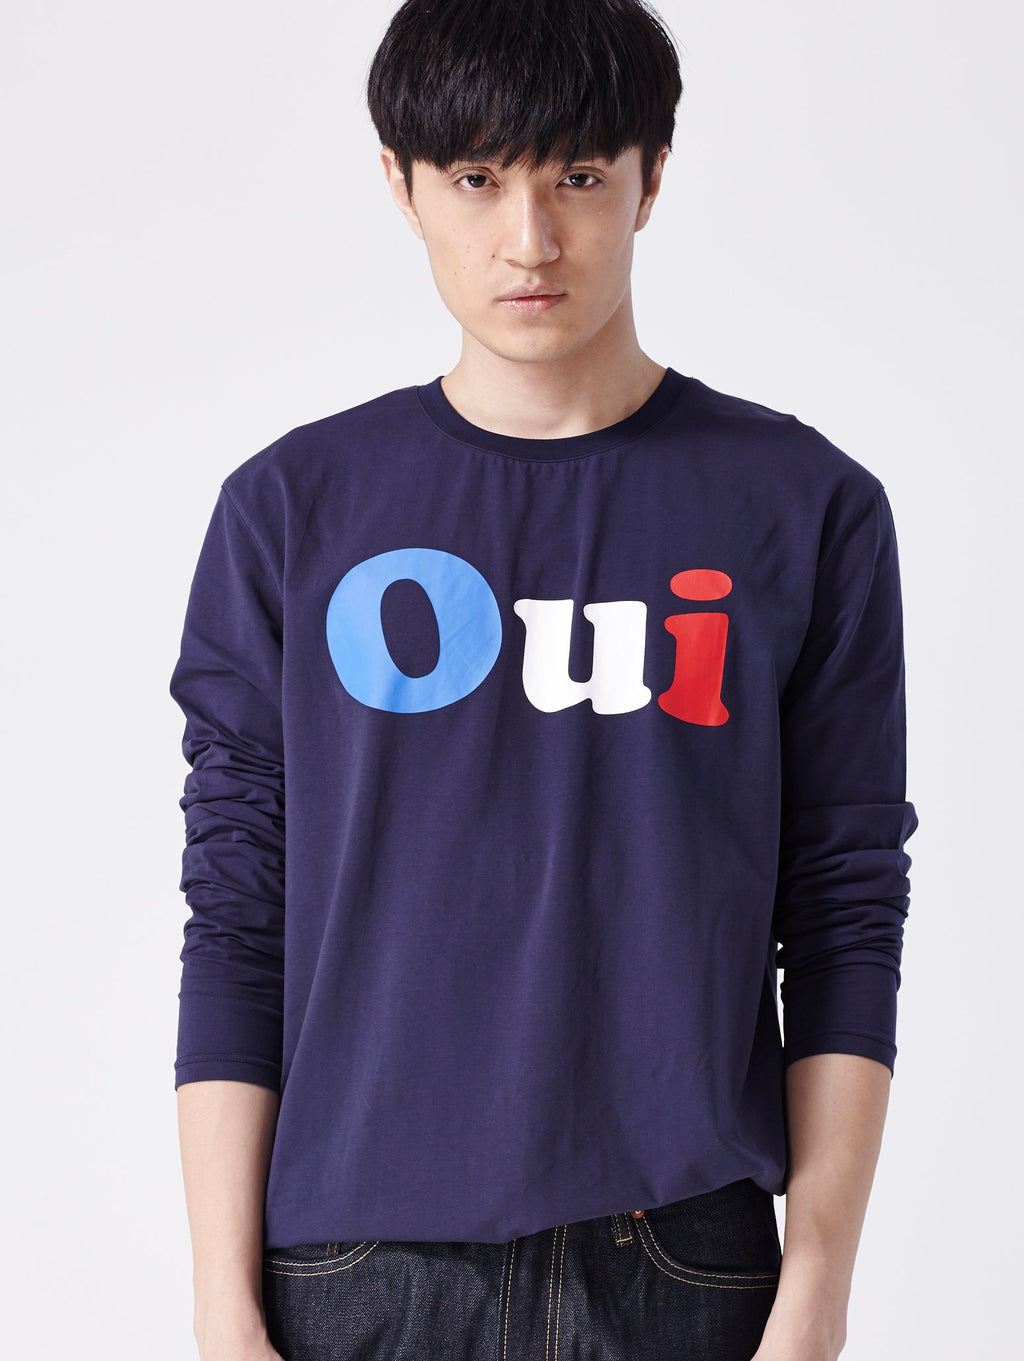 Men's Navy Oui tricolor Long Sleeve Tee